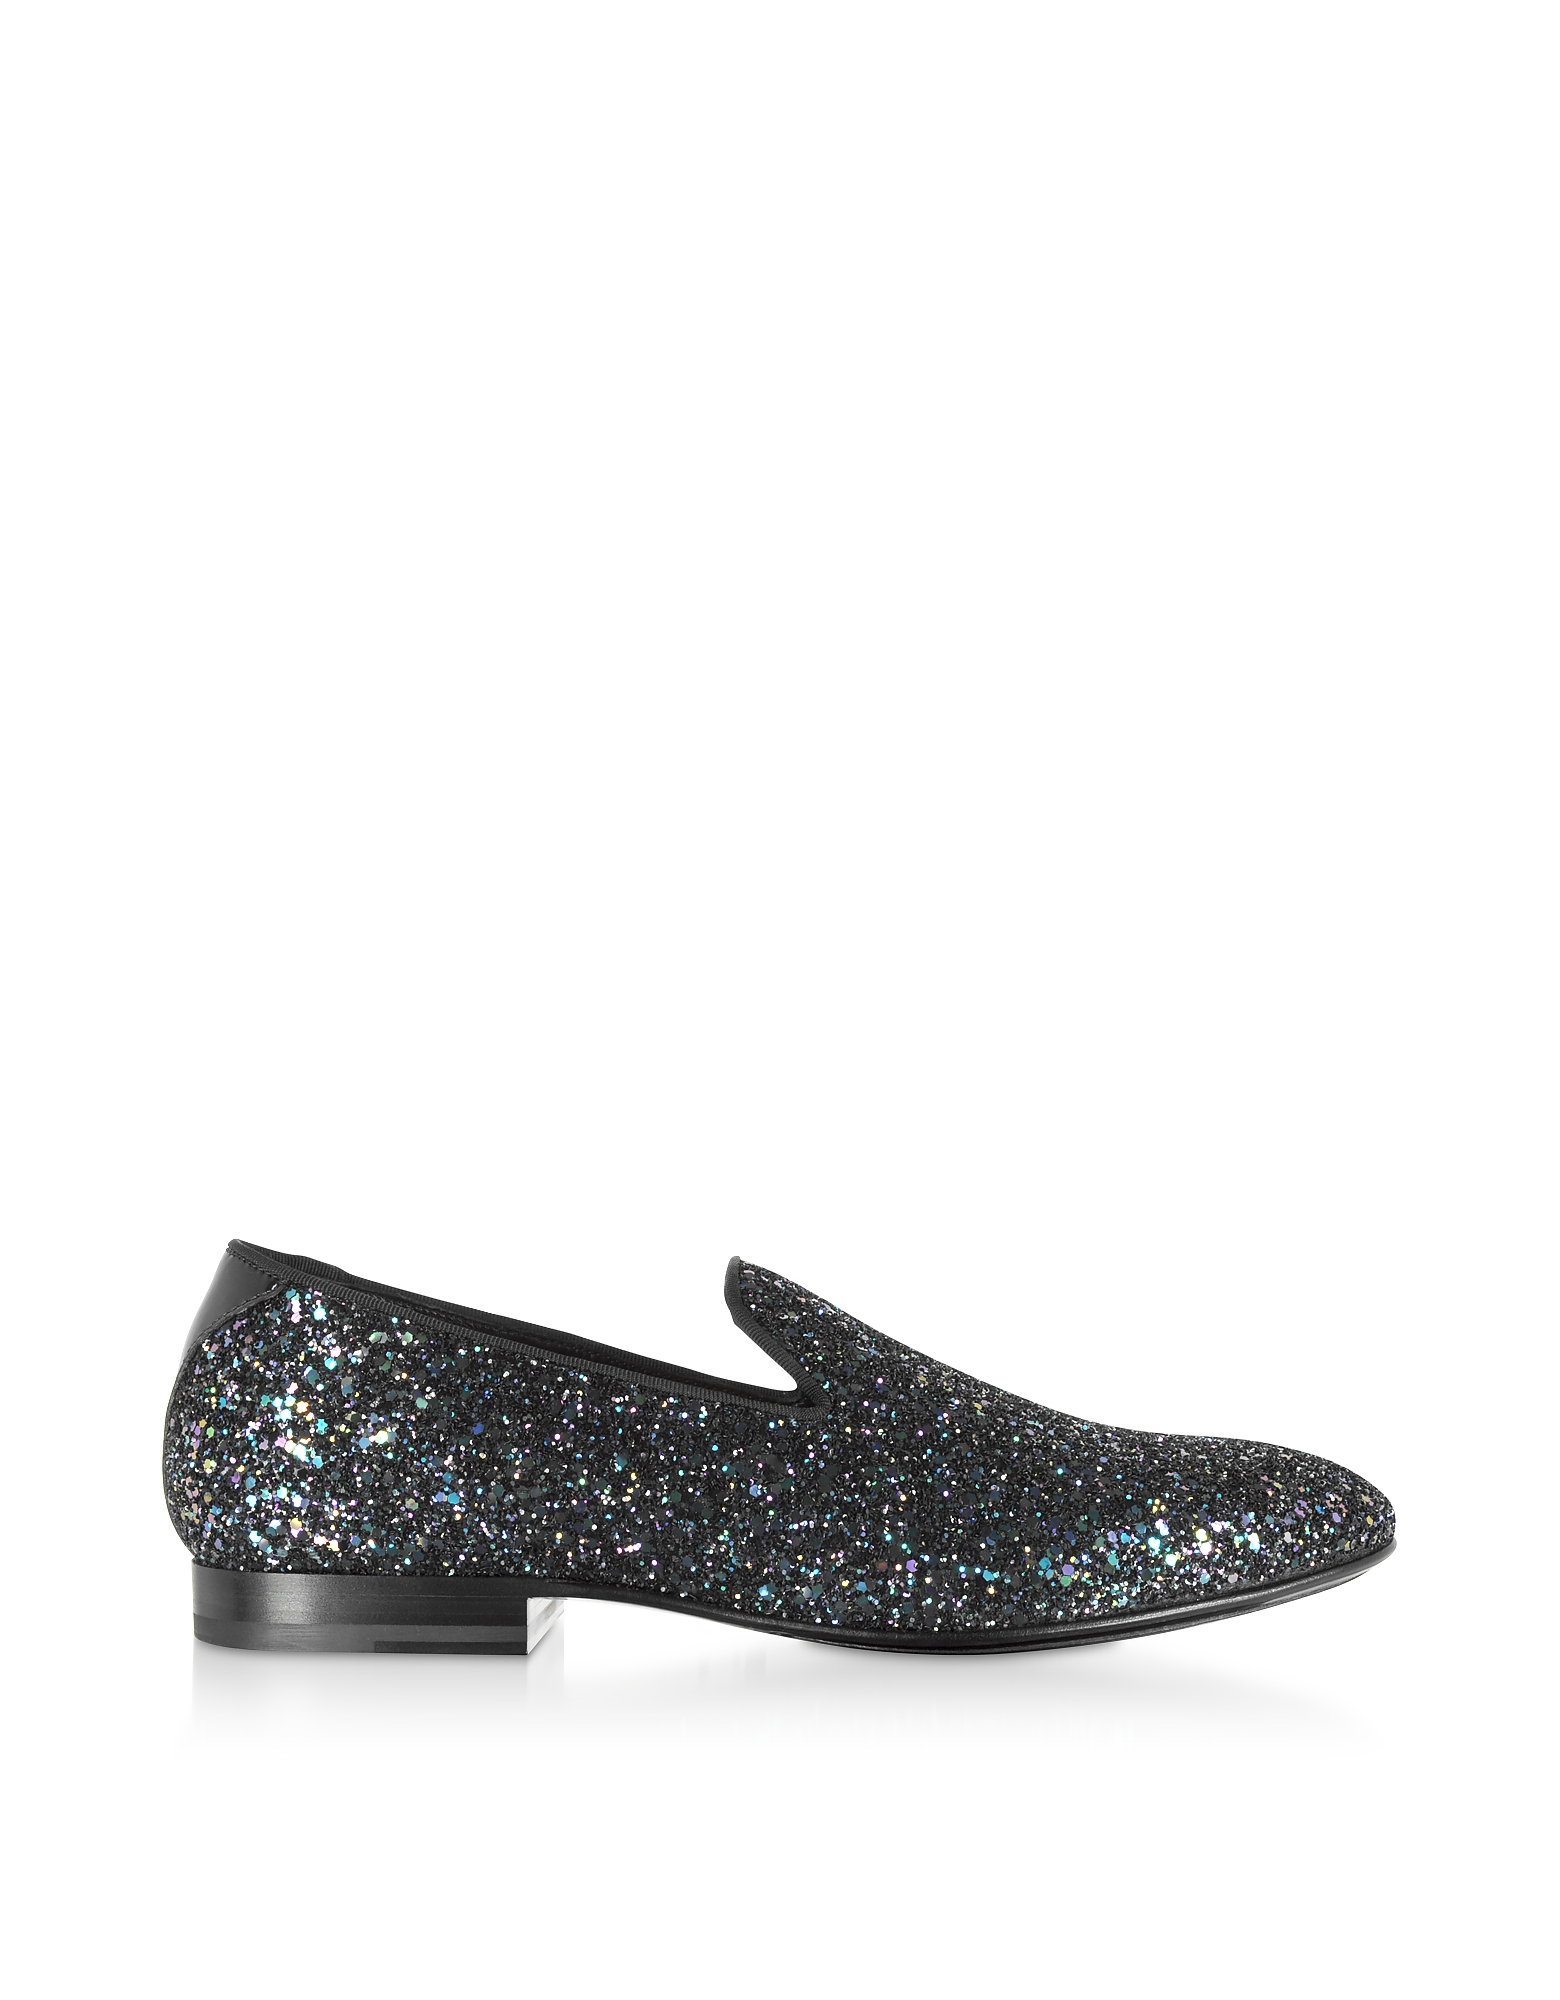 Jimmy Choo Designer Shoes, Petrol Glitter fabric THAME Slipper Shoes